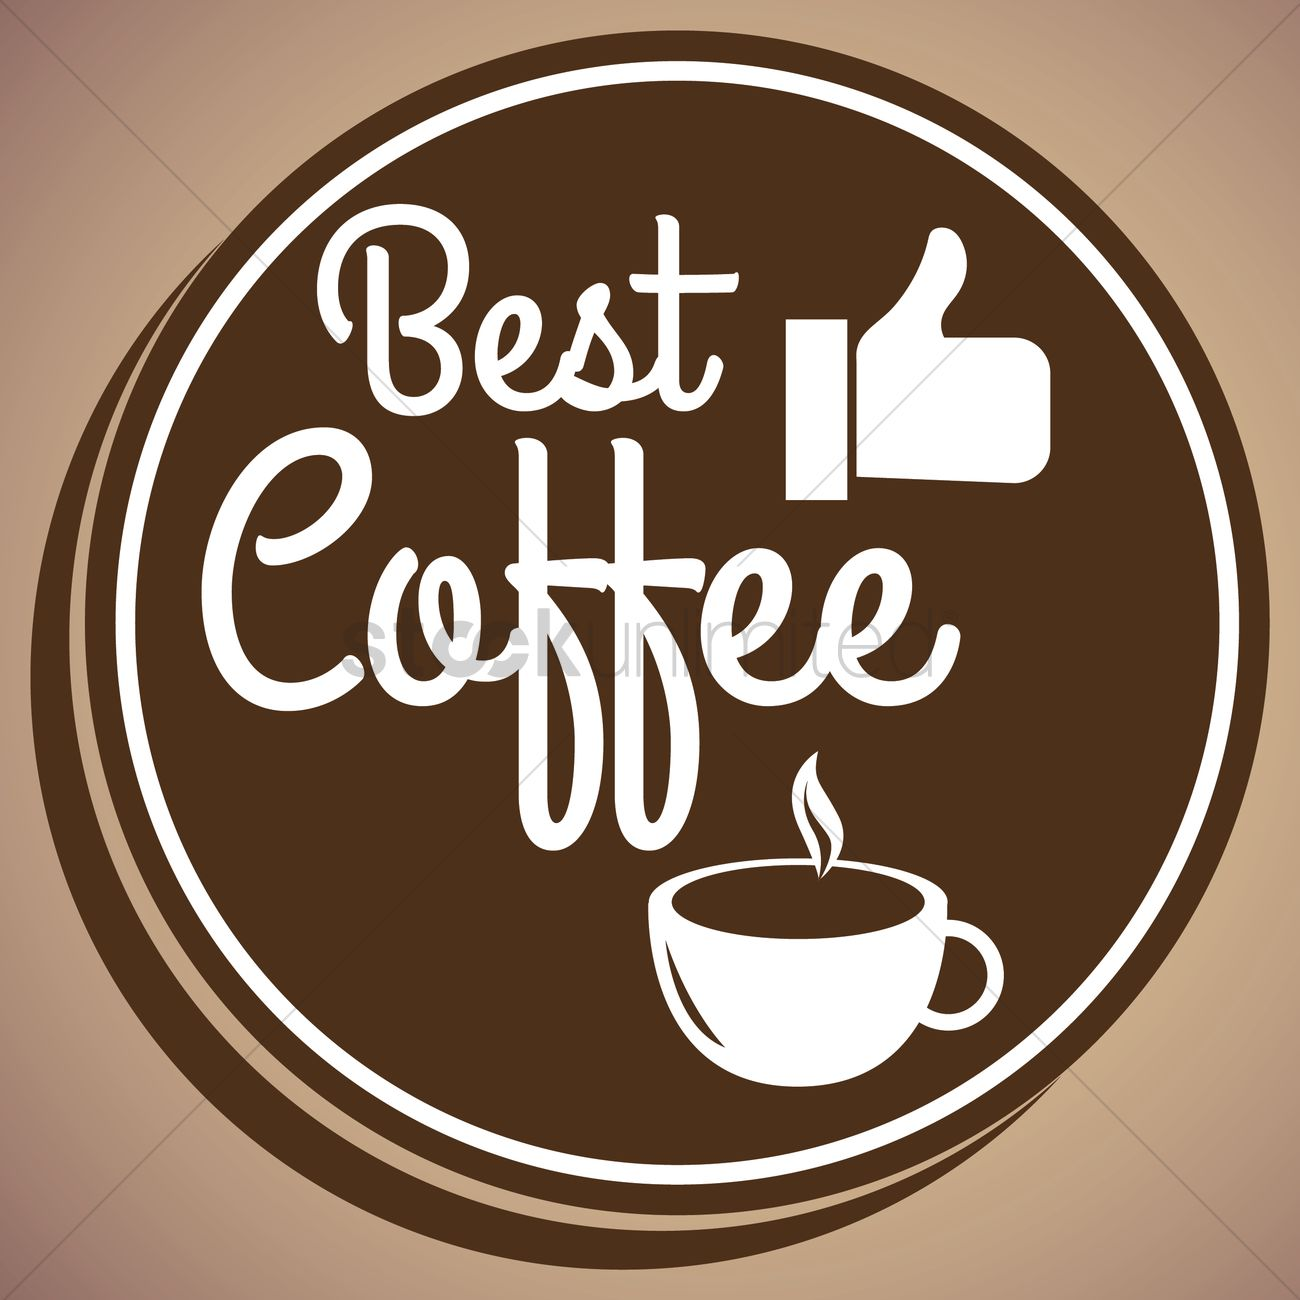 Coffee shop wallpaper Vector Image   1811750 StockUnlimited 1300x1300